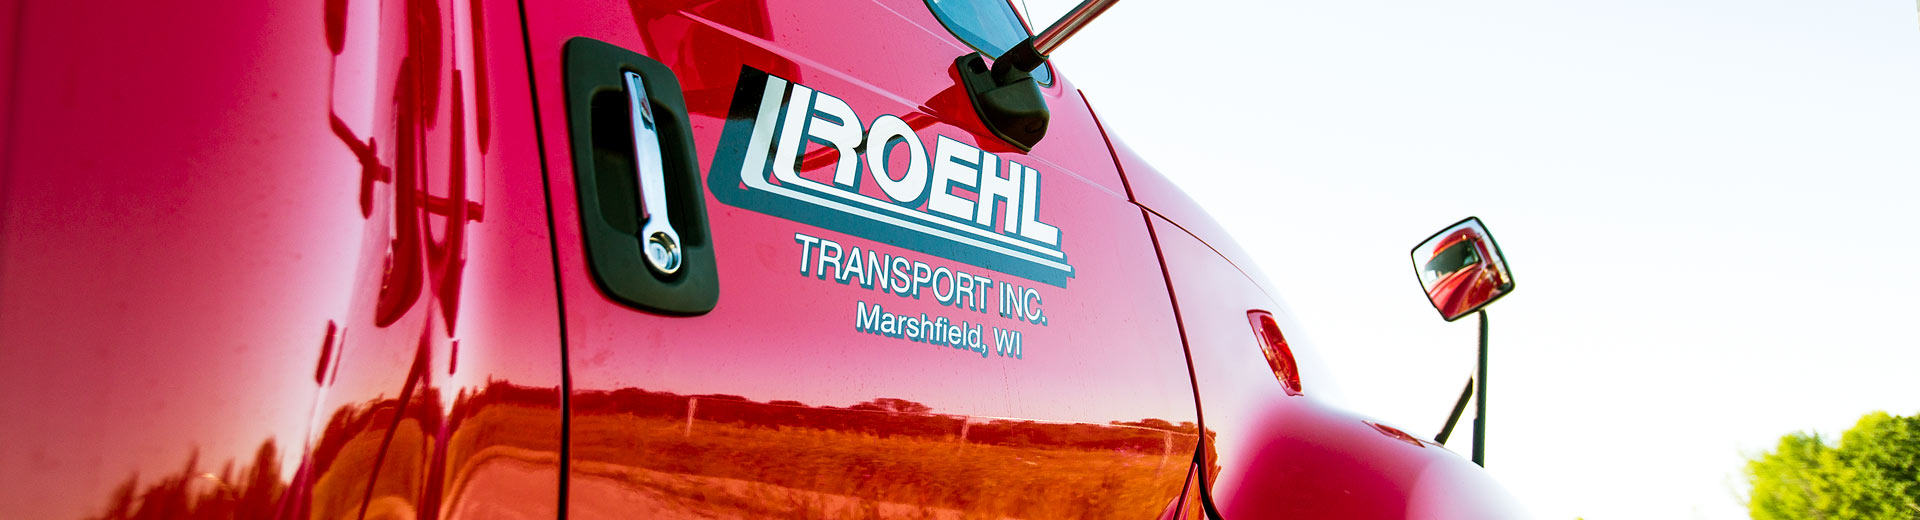 Learn more about Roehl Transport